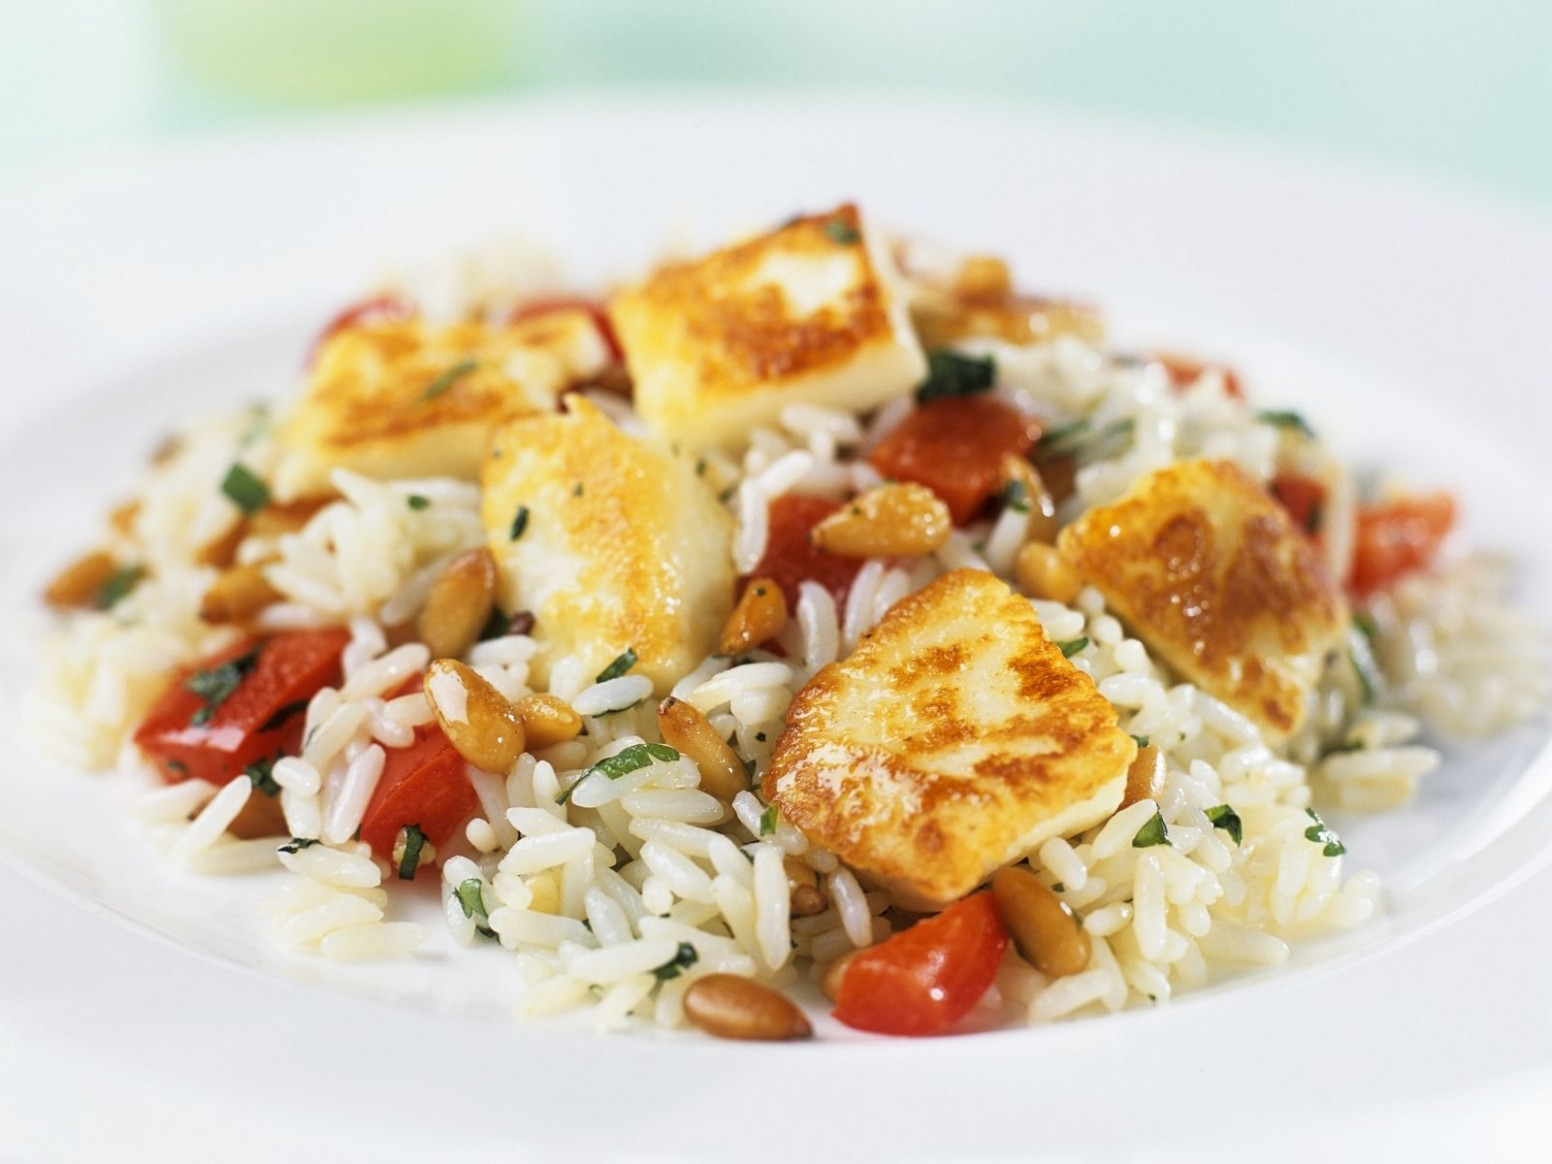 Chicken Sautee over Rice - chicken recipes over rice